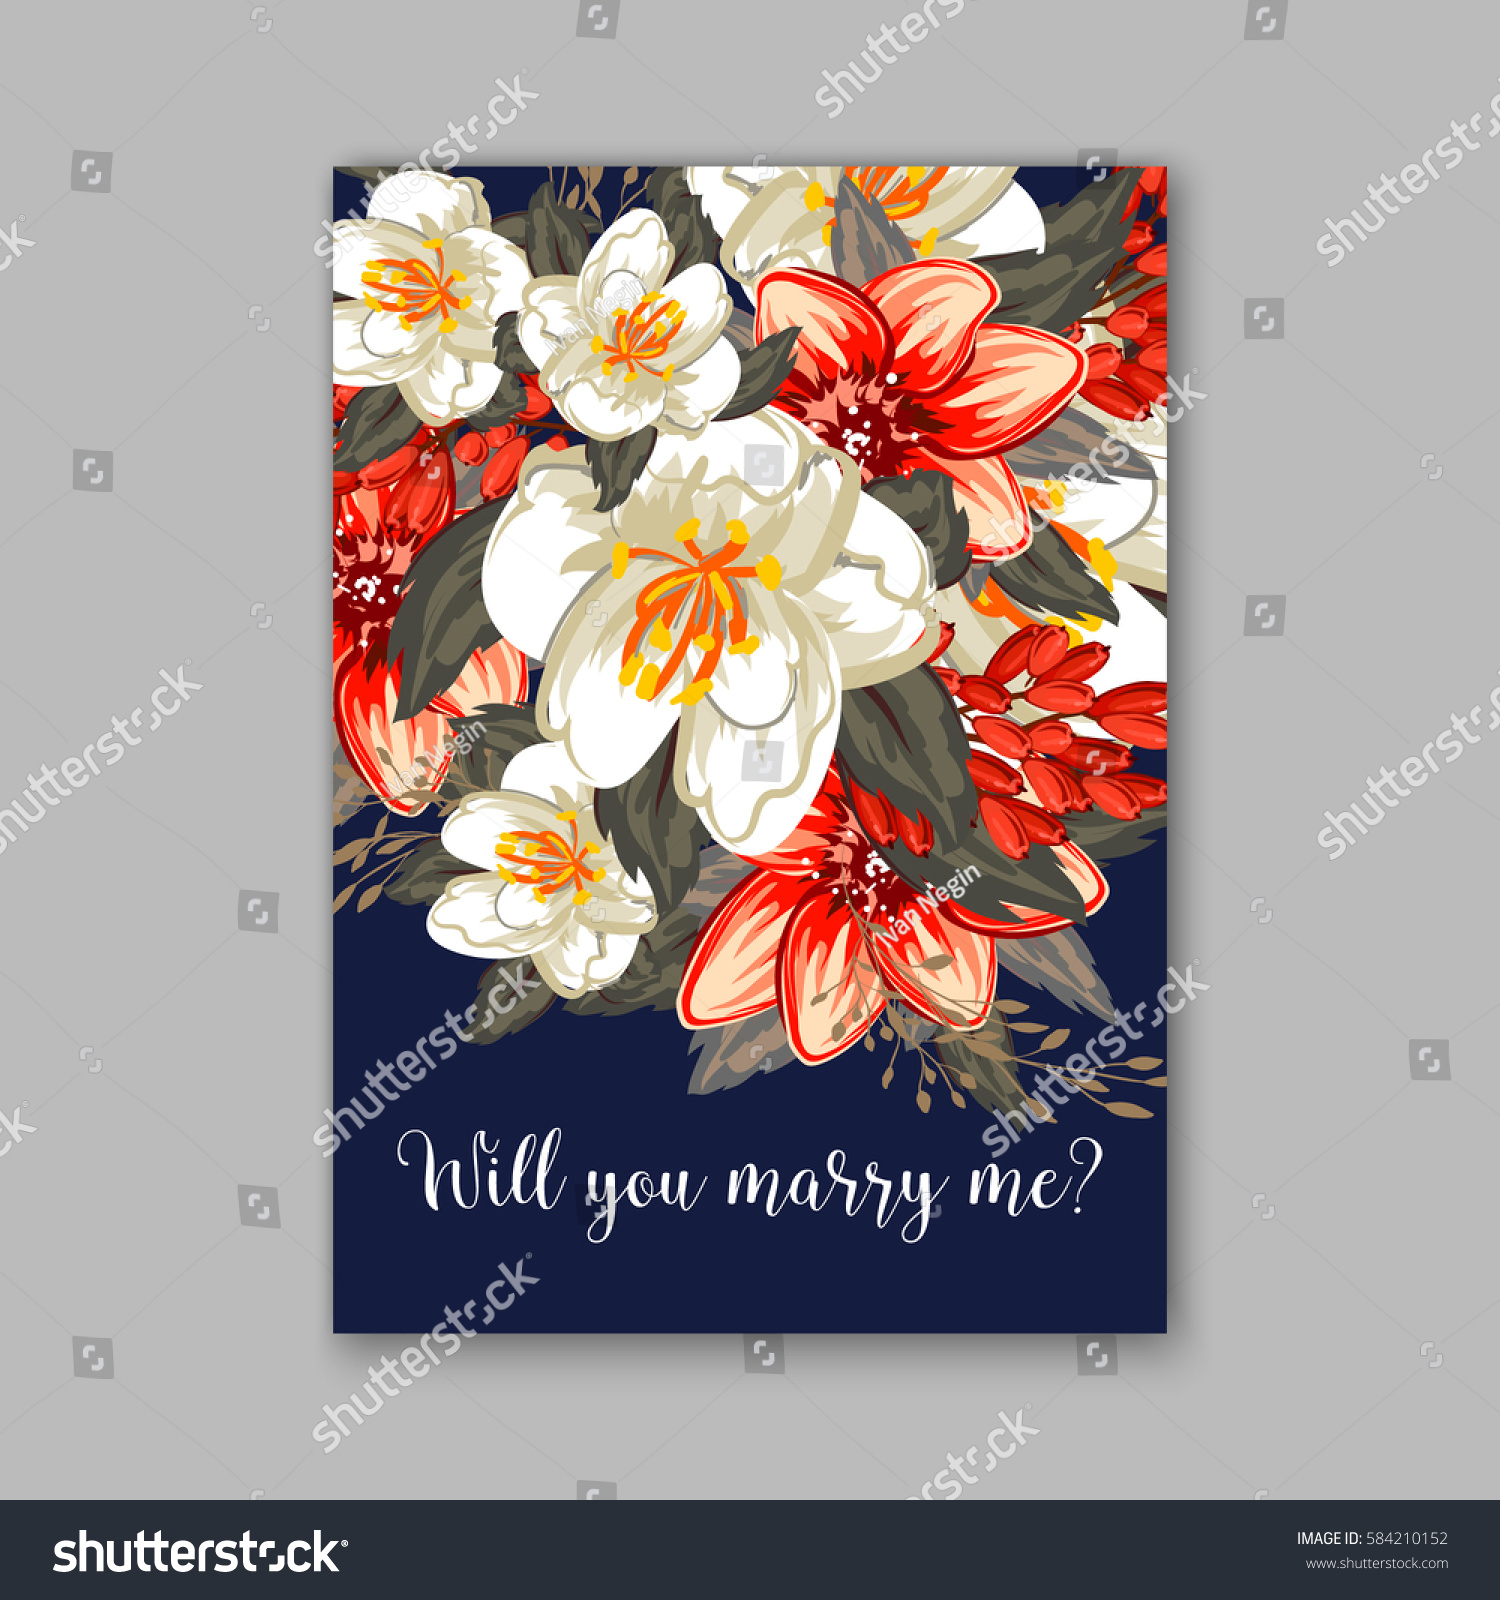 Romantic Wedding Invitation Card Template Red Stock Vector (Royalty ...